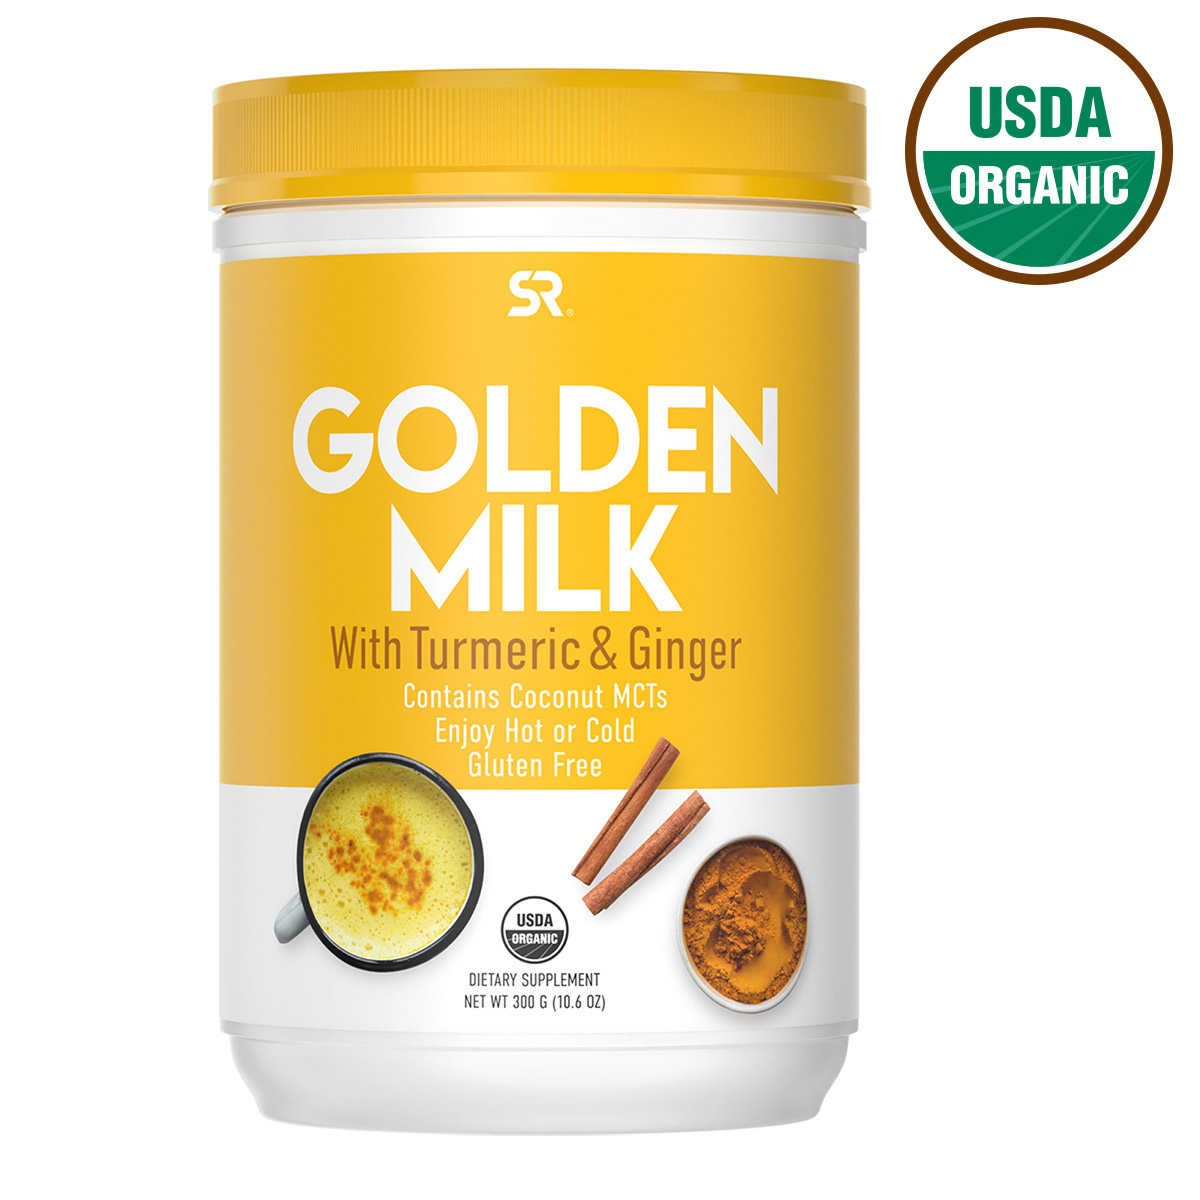 SỮA NGHỆ GỪNG HỮU CƠ SPORTS RESEARCH USDA ORGANIC GOLDEN MILK WITH TURMERIC AND GINGER POWDER